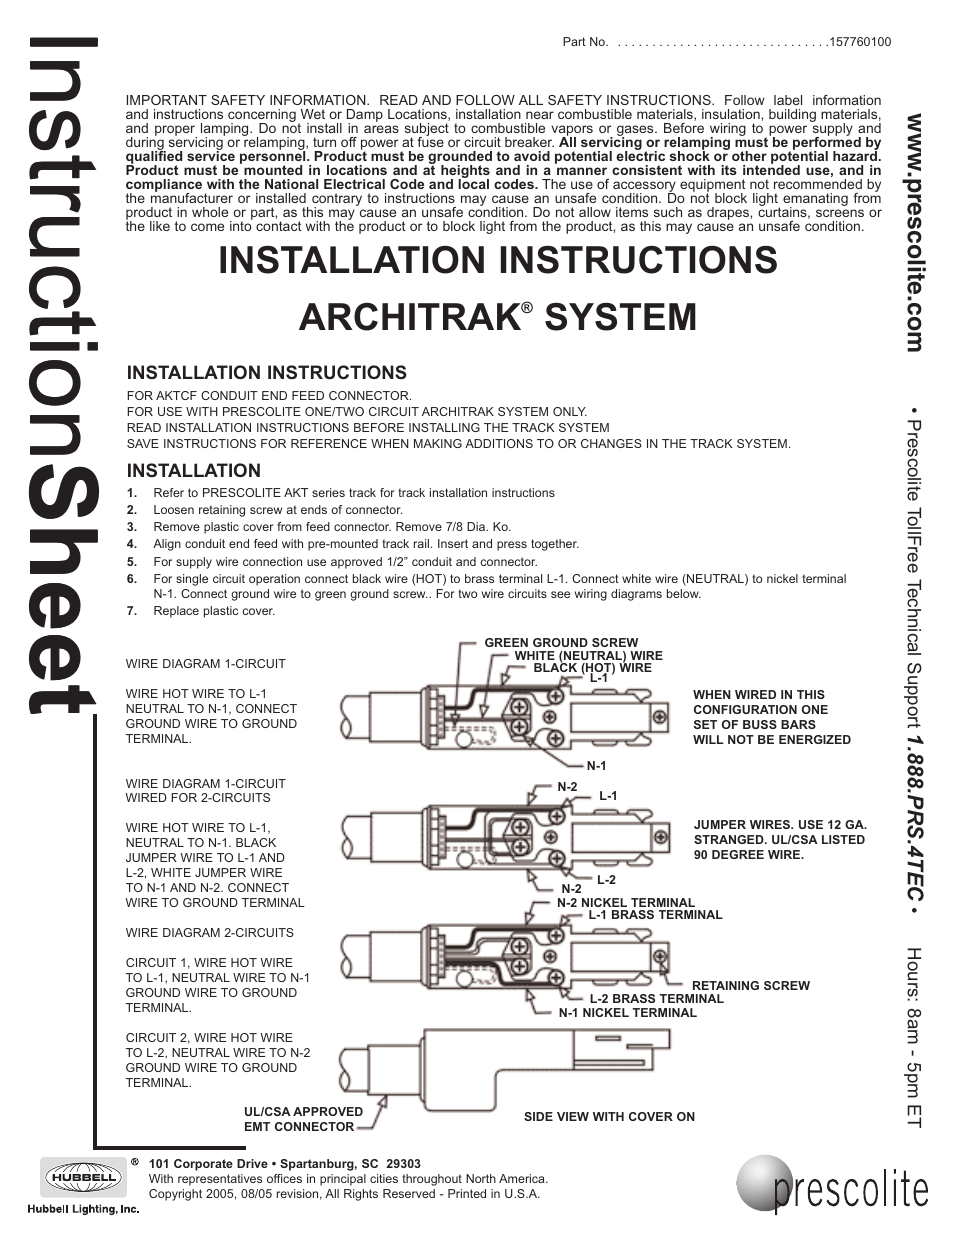 Prescolite ARCHITRAK SYSTEM AKTCF - Conduit End Joiner User Manual ...